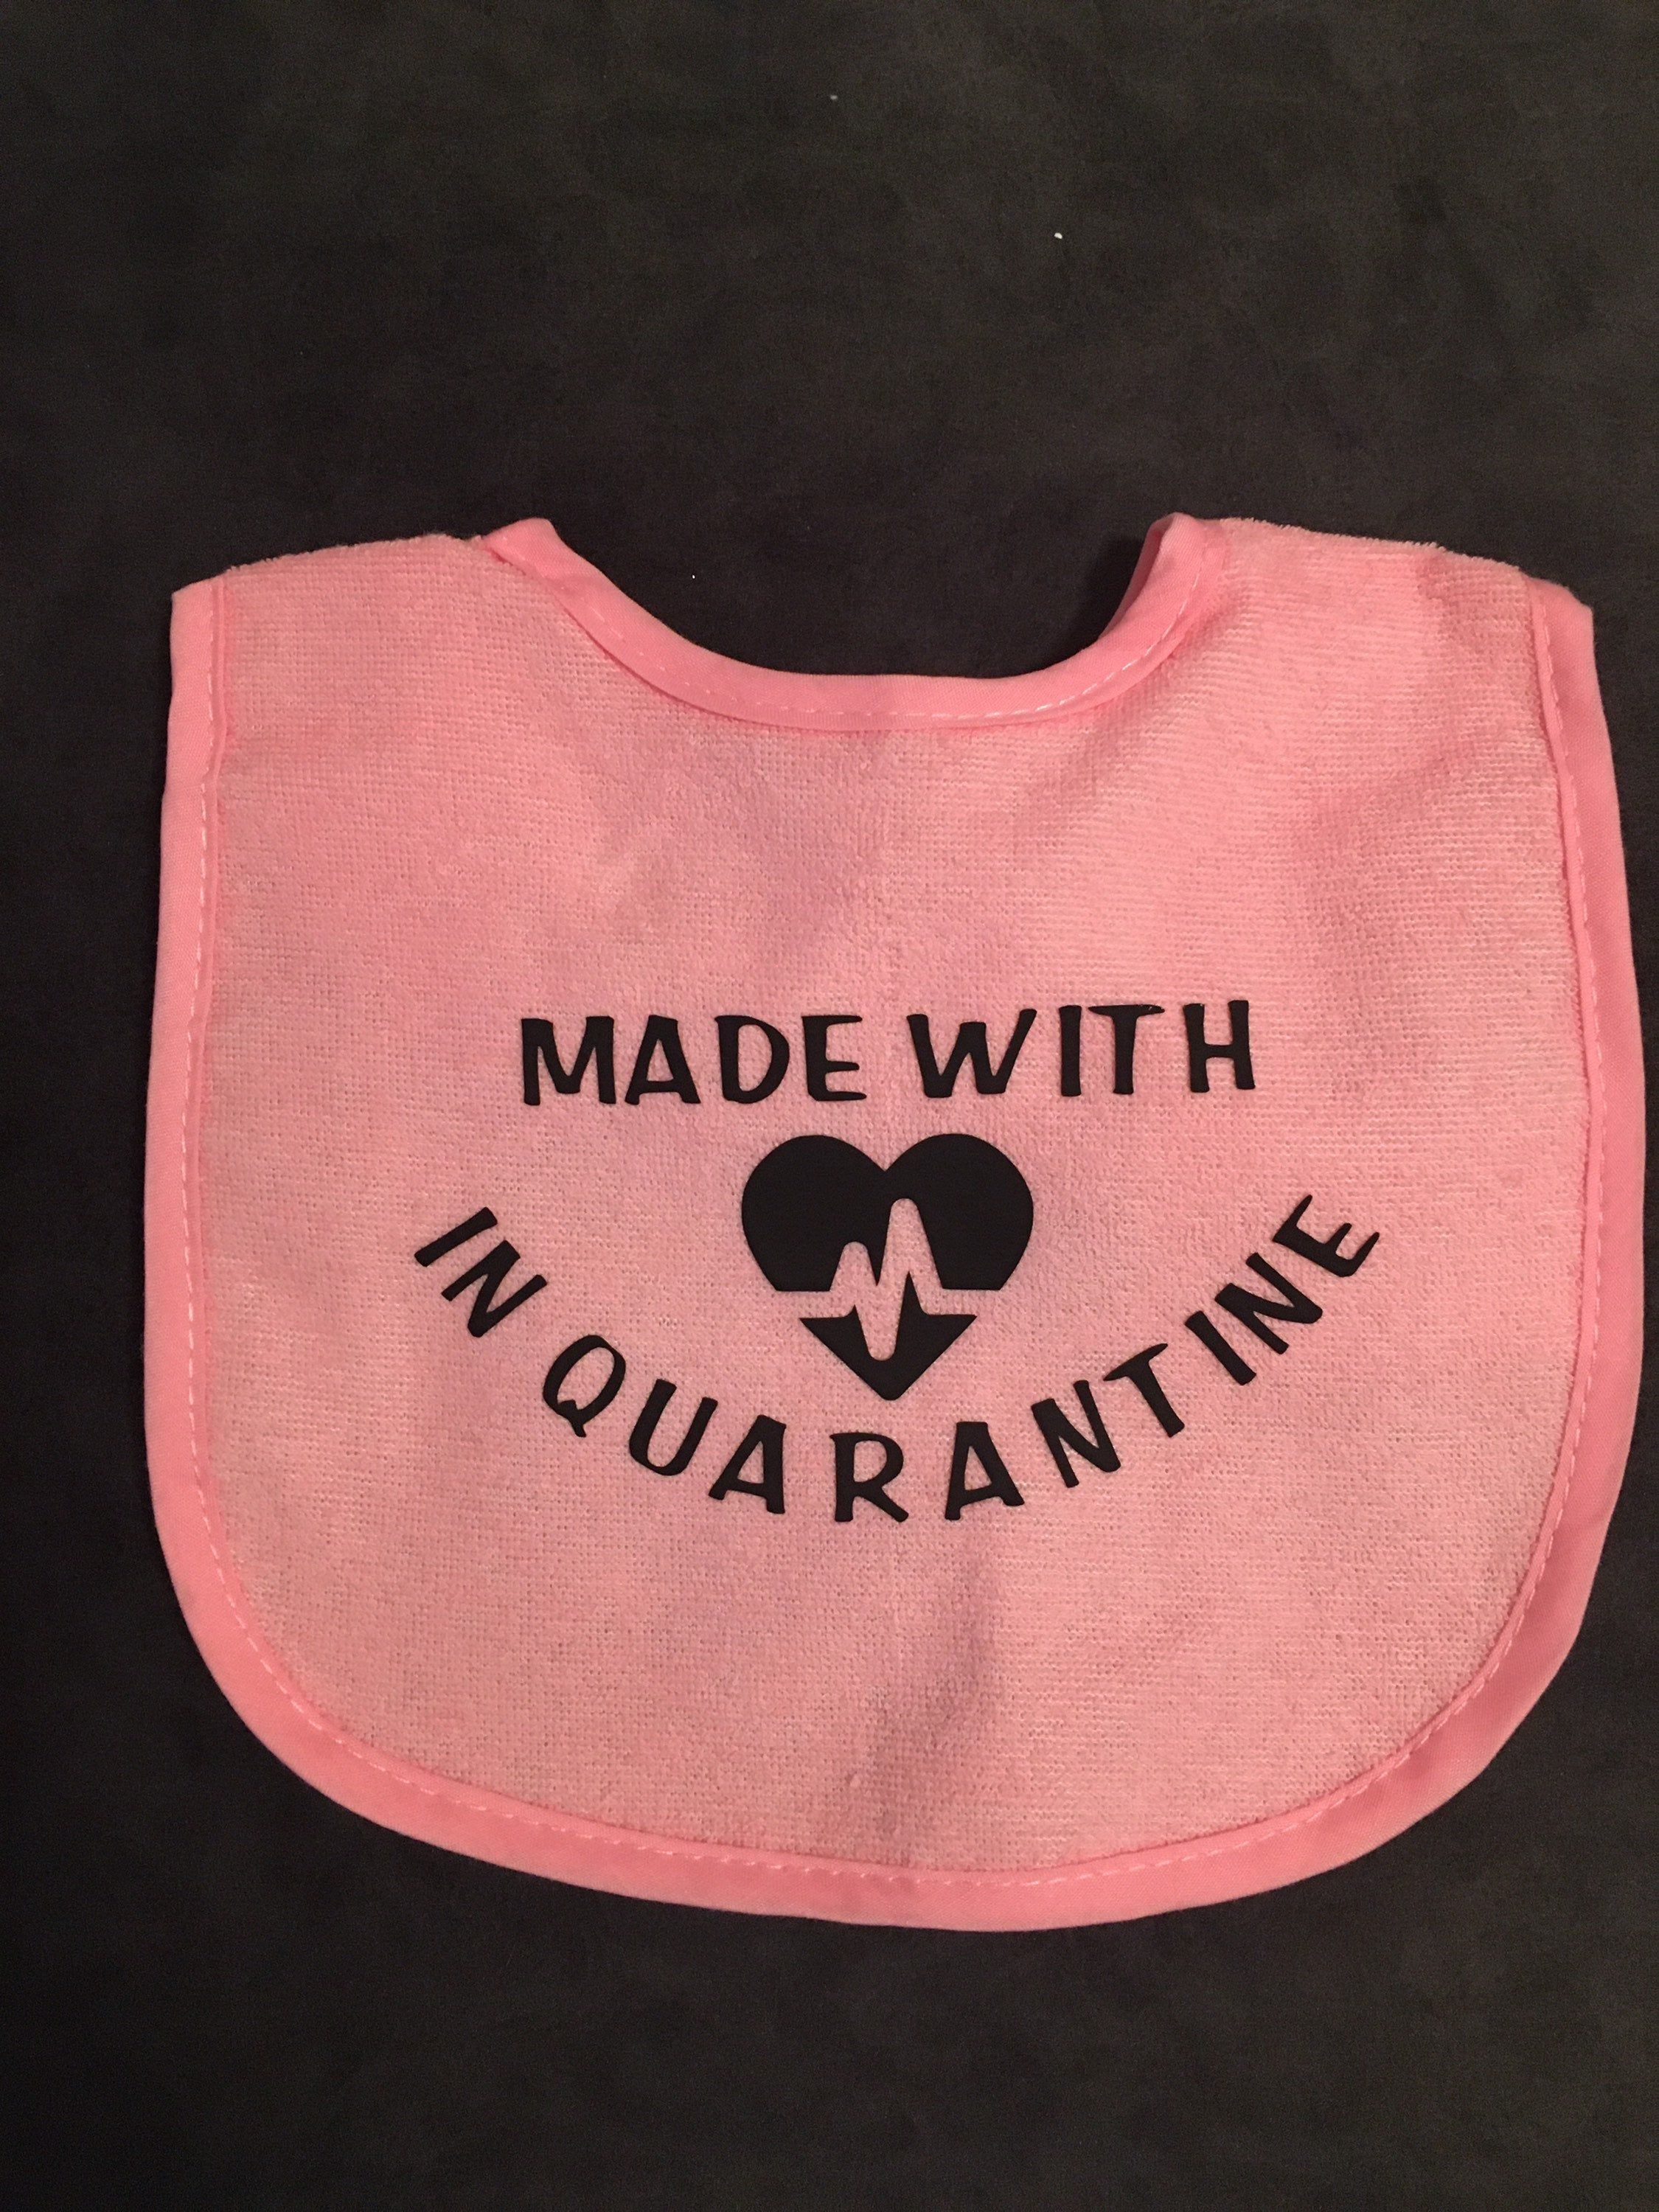 Made with love in quarantine baby bib - funny bib